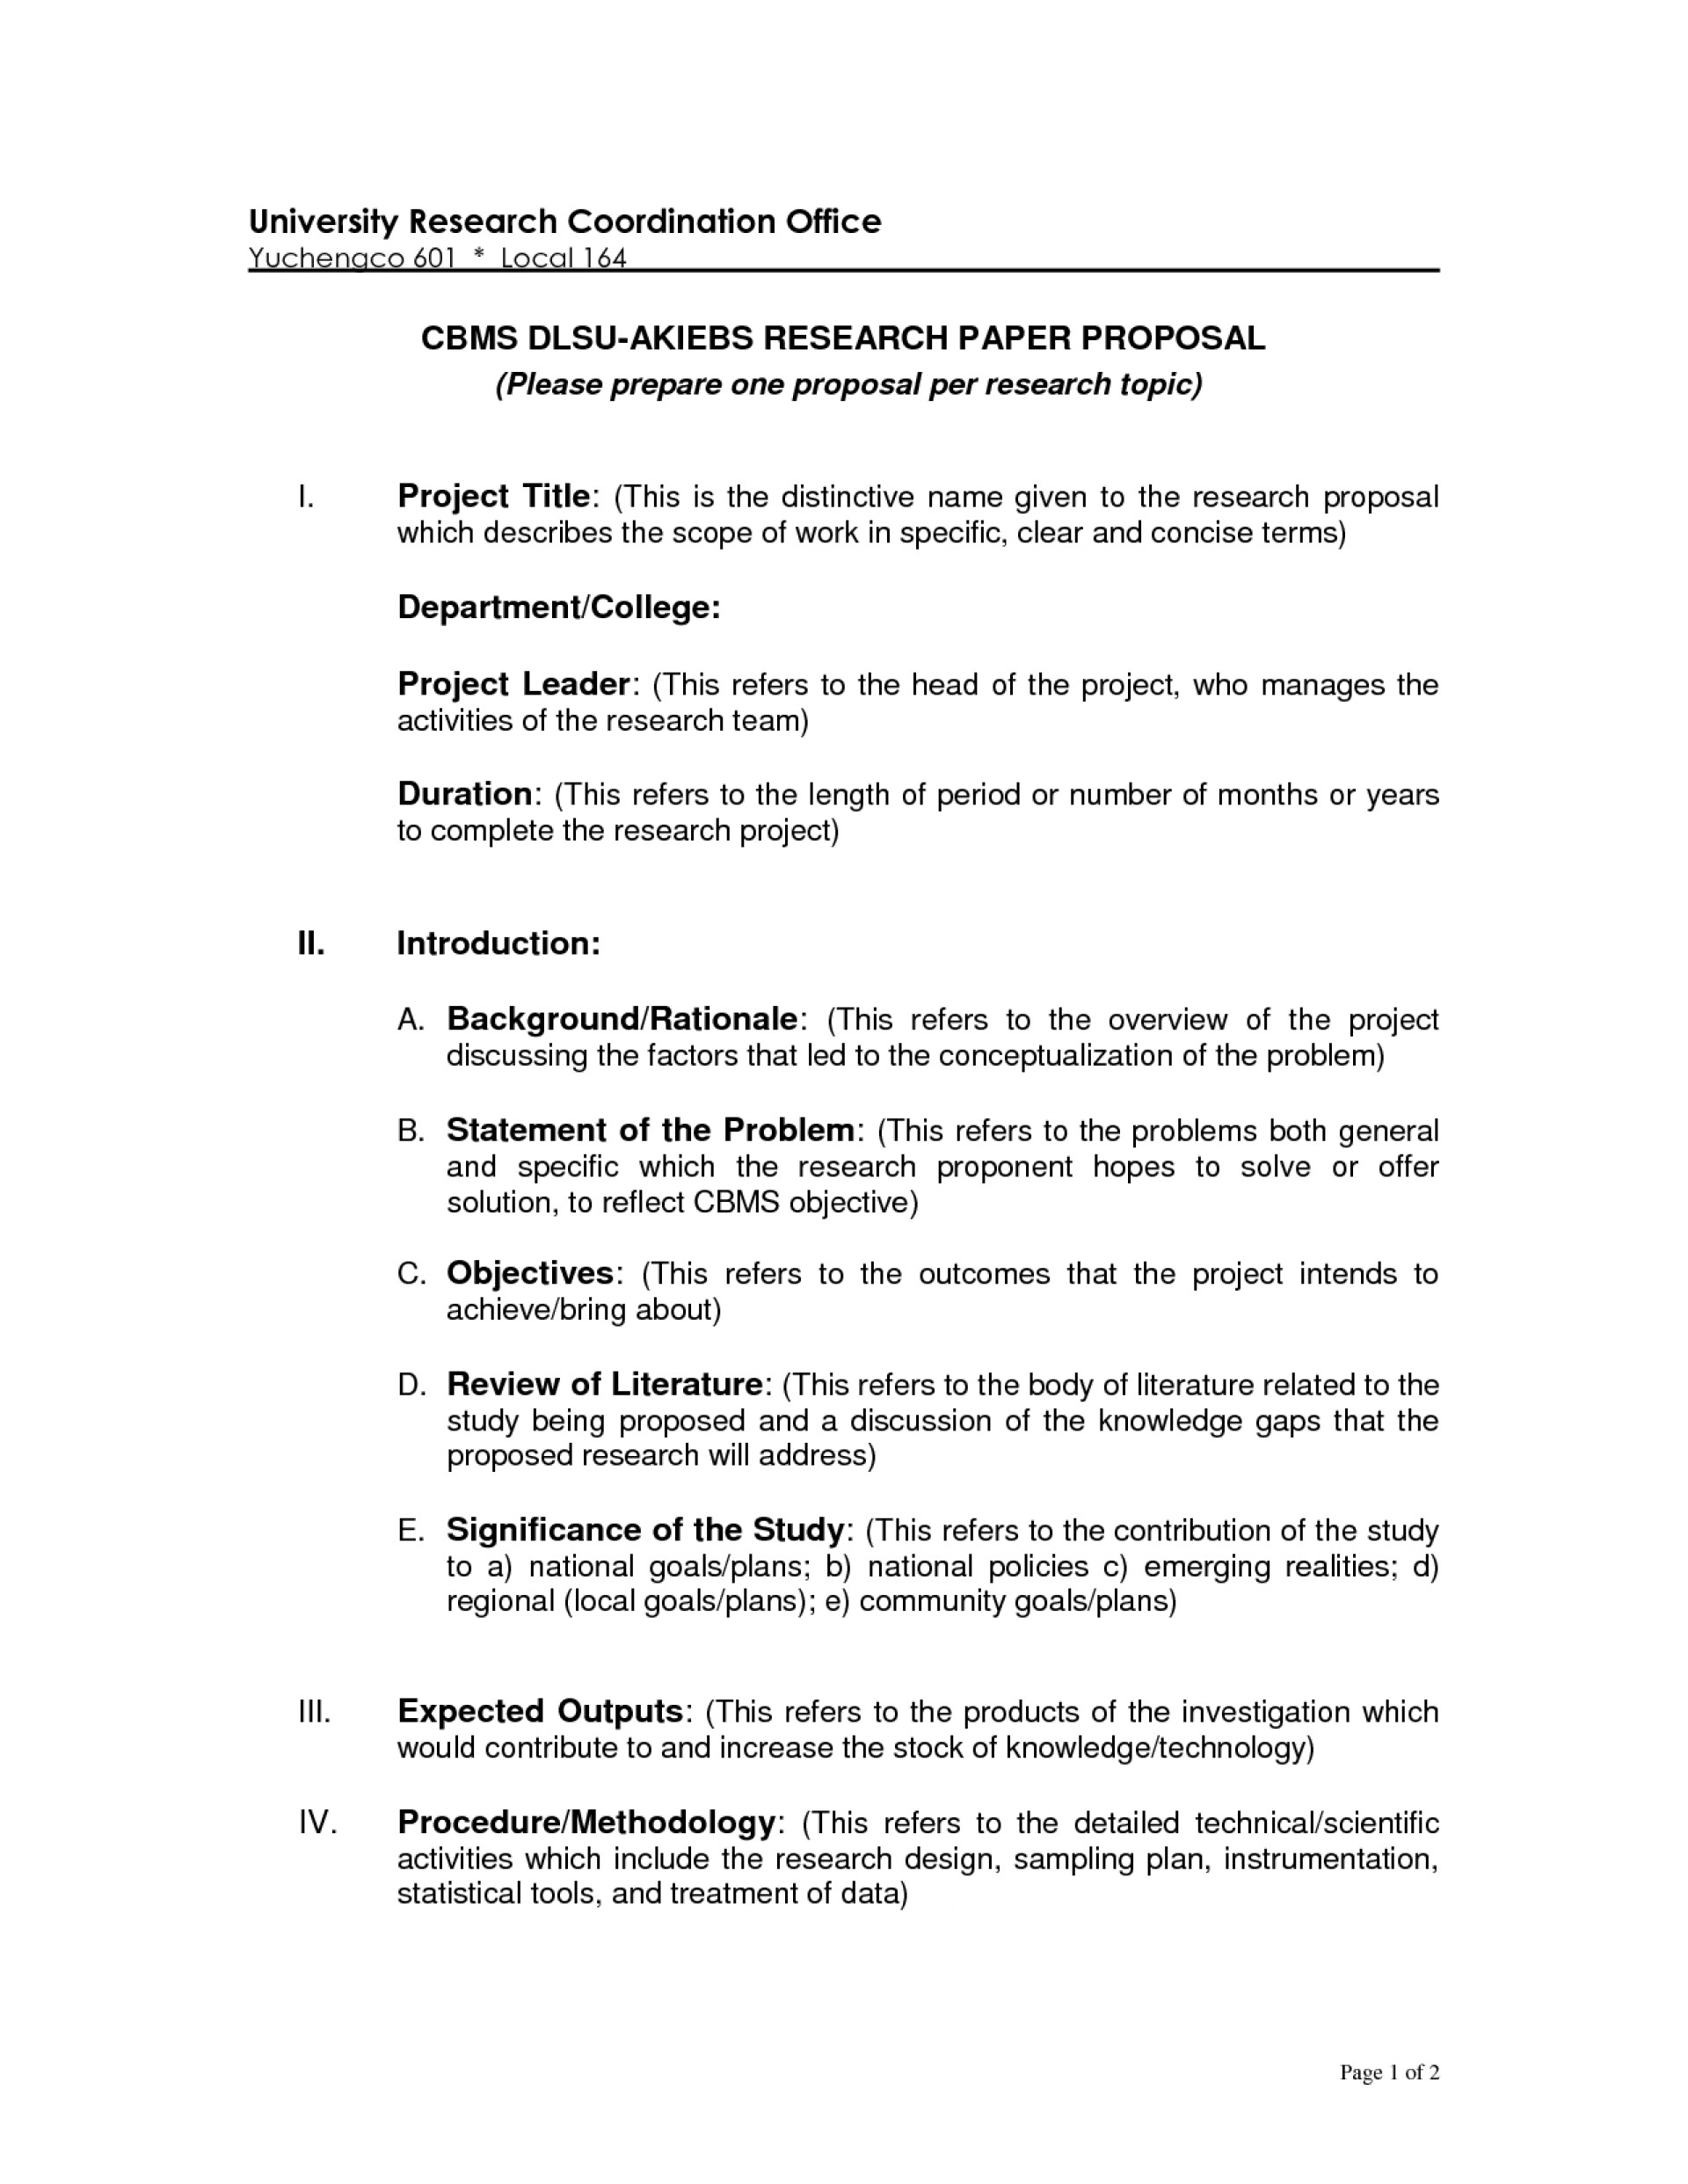 003 Research Paper Proposal Sample Ideas Of Phd Format Example Essay Appendix Astounding Pdf Mla In Education 1920